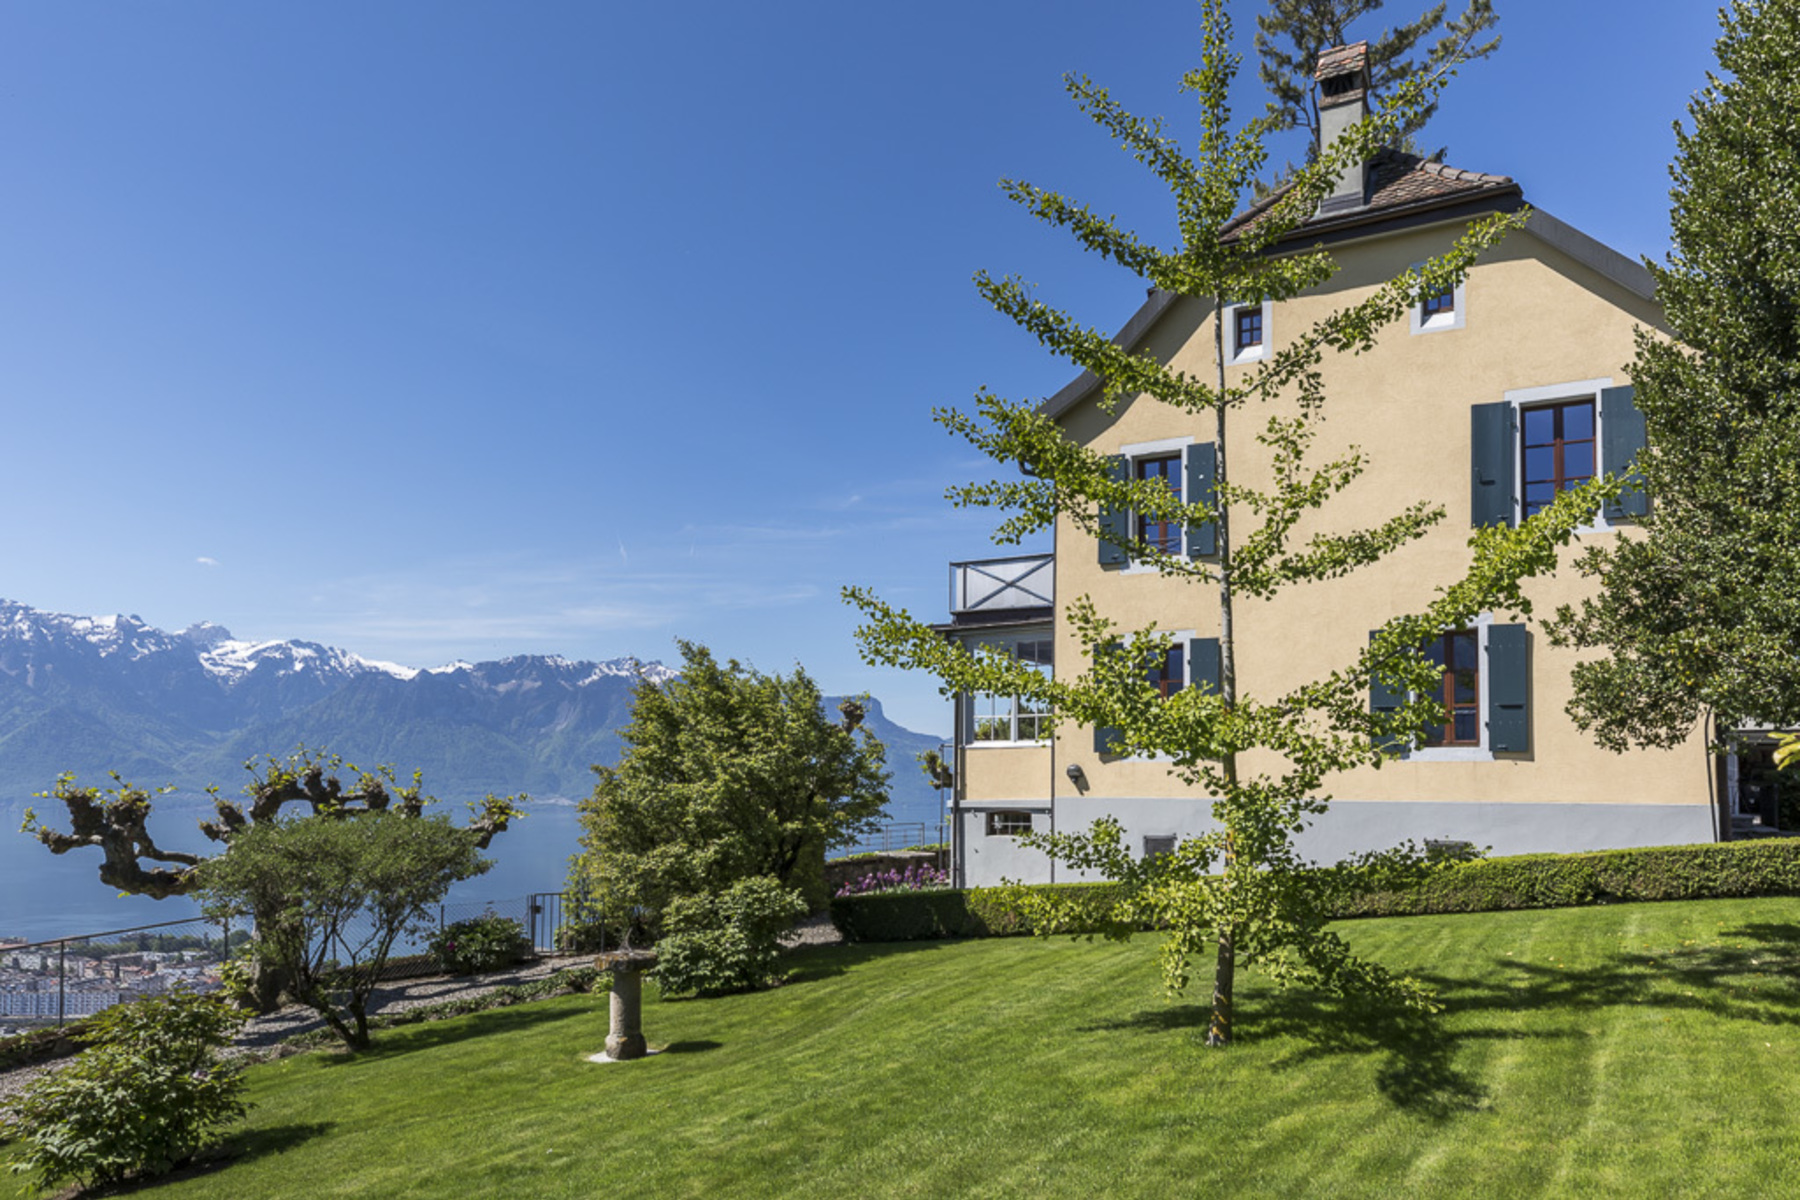 Maison unifamiliale pour l Vente à Rare property in the heart of Lavaux with spectacular lake view Jongny Jongny, Vaud, 1805 Suisse